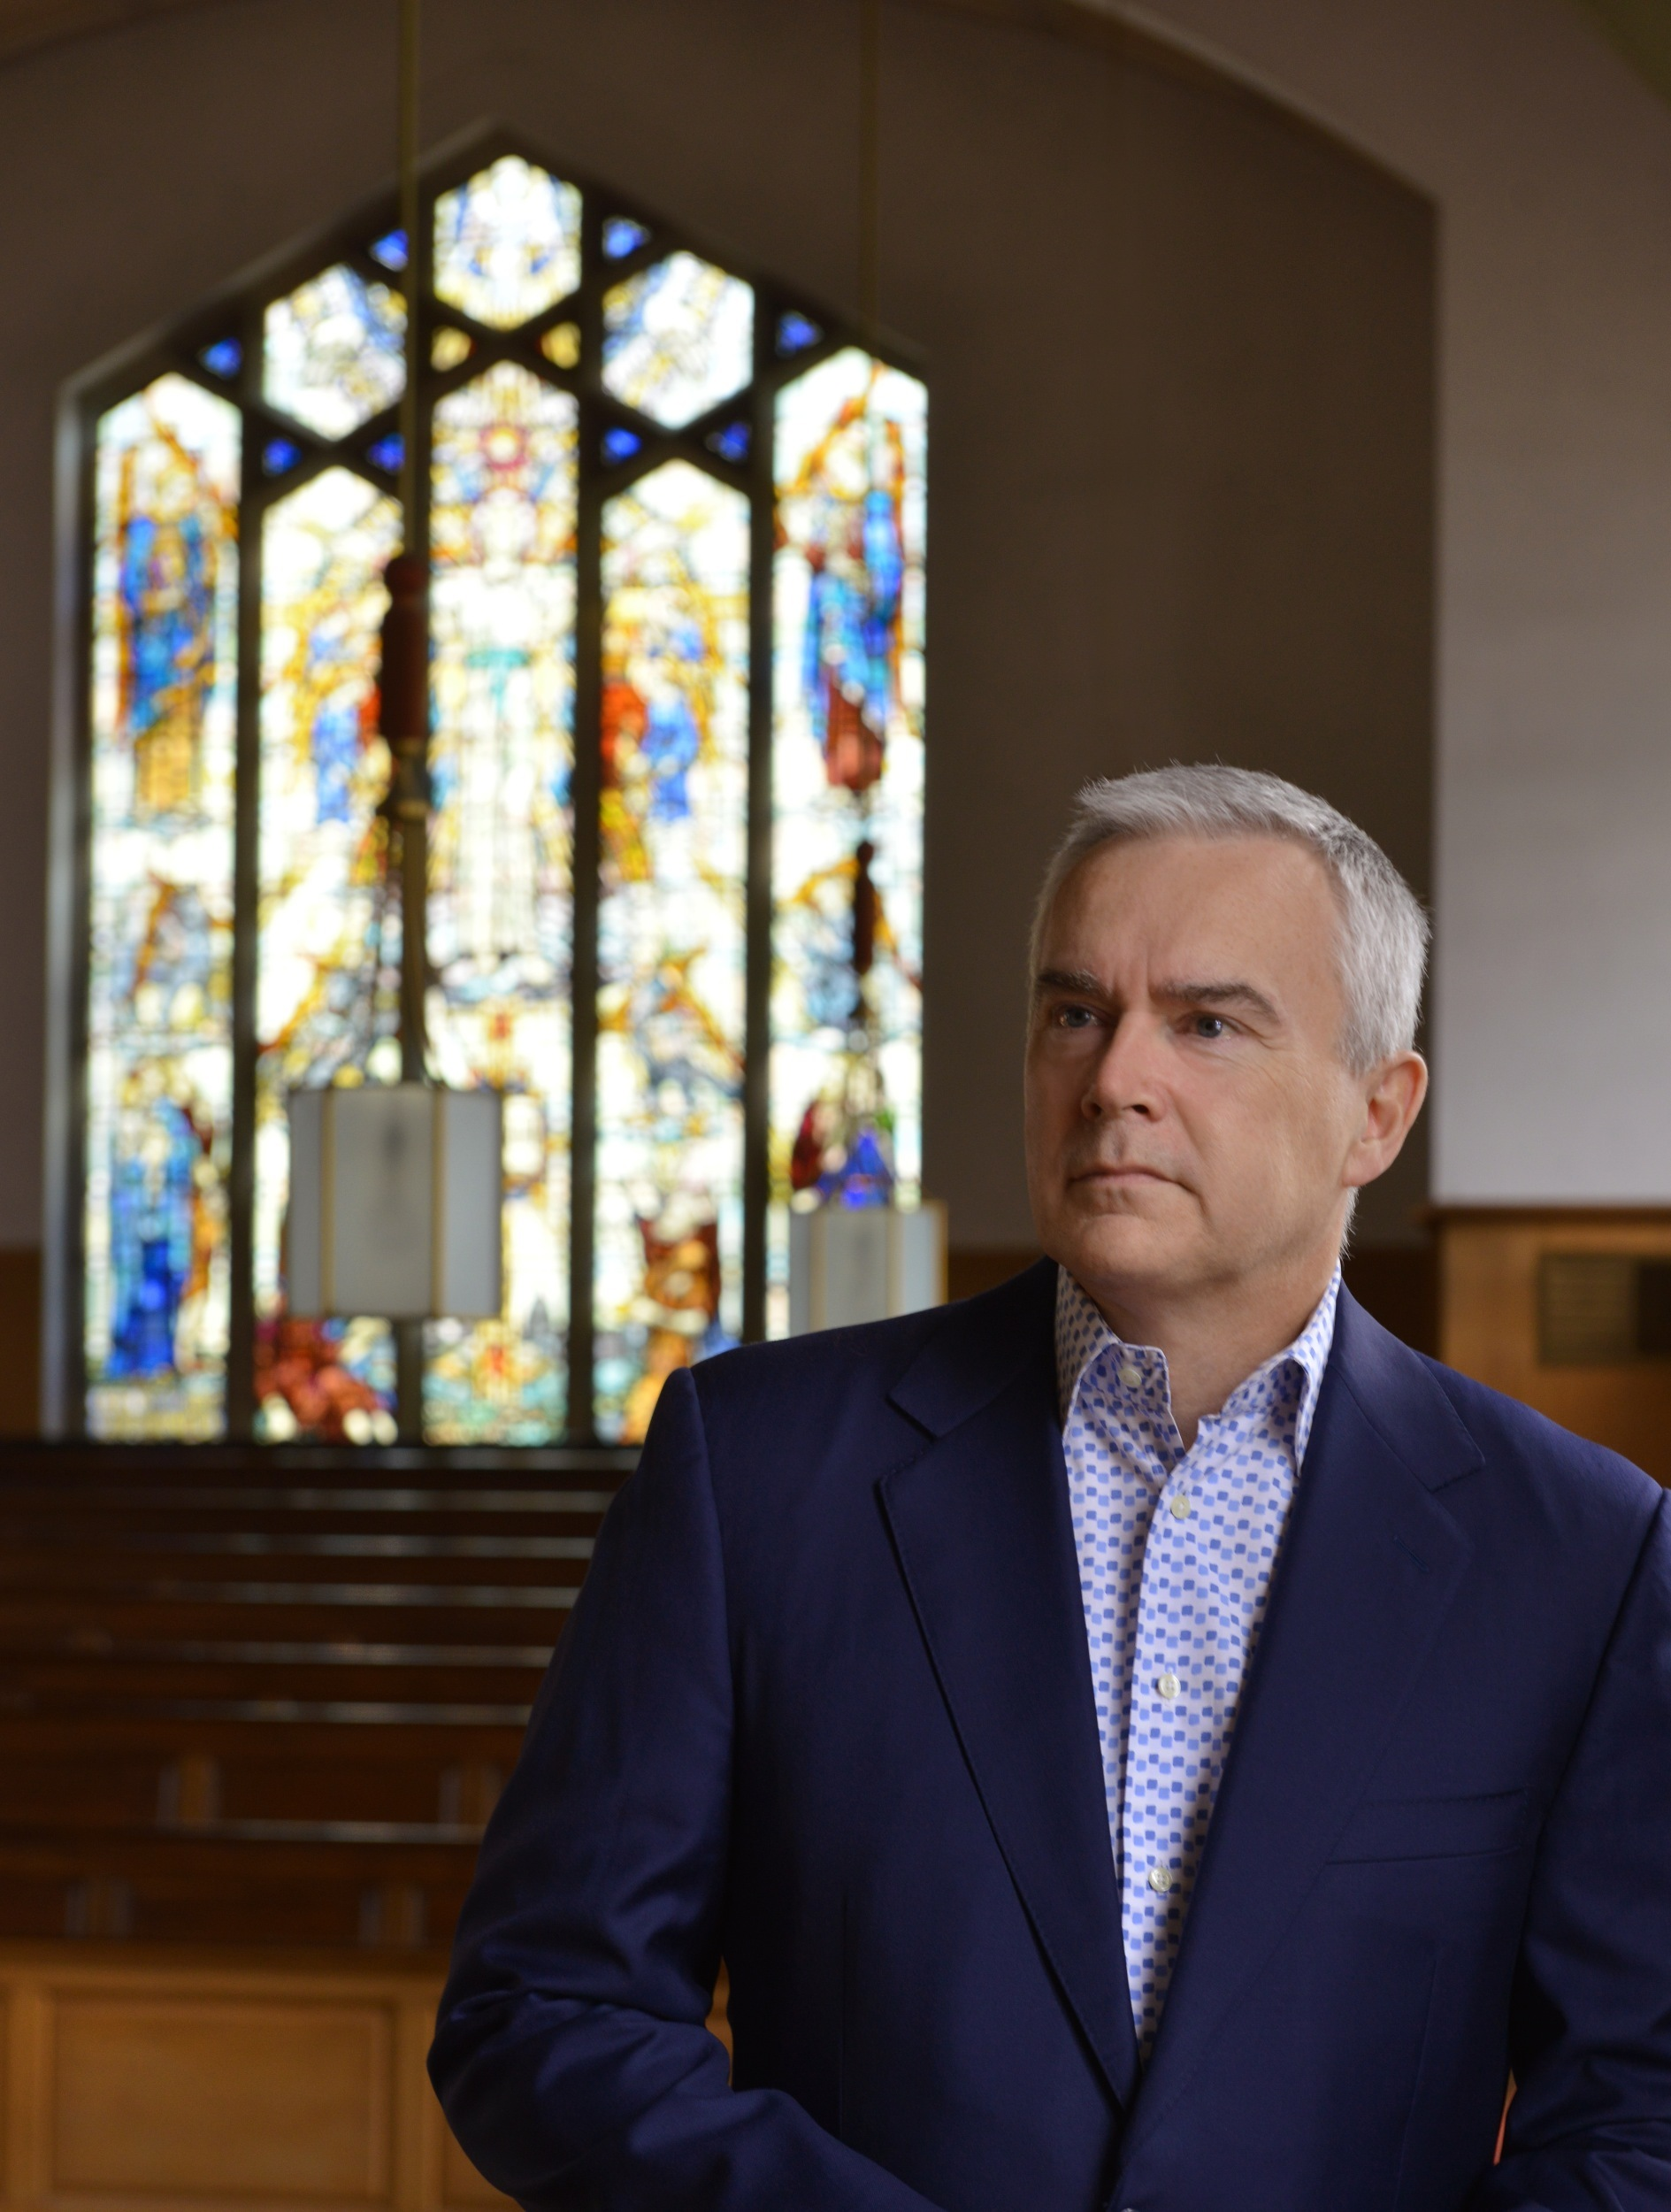 Broadcaster Huw Edwards